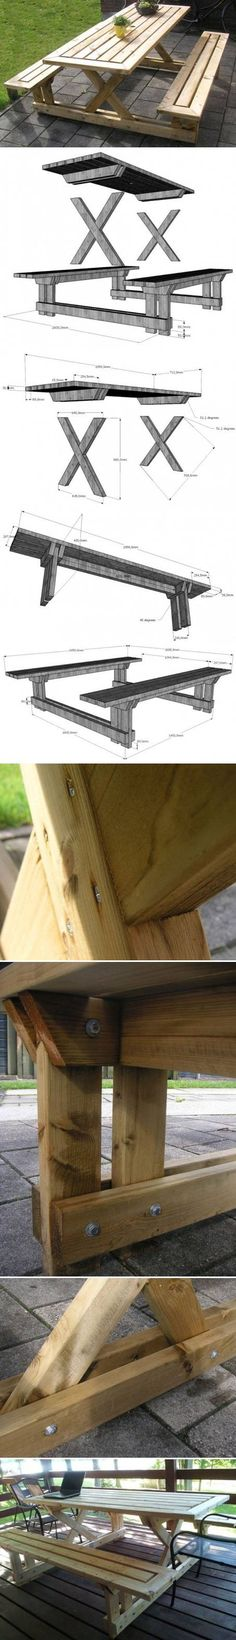 DIY Wood Garden Table With Bench | www.FabArtDIY.com LIKE Us on Facebook ==> https://www.facebook.com/FabArtDIY